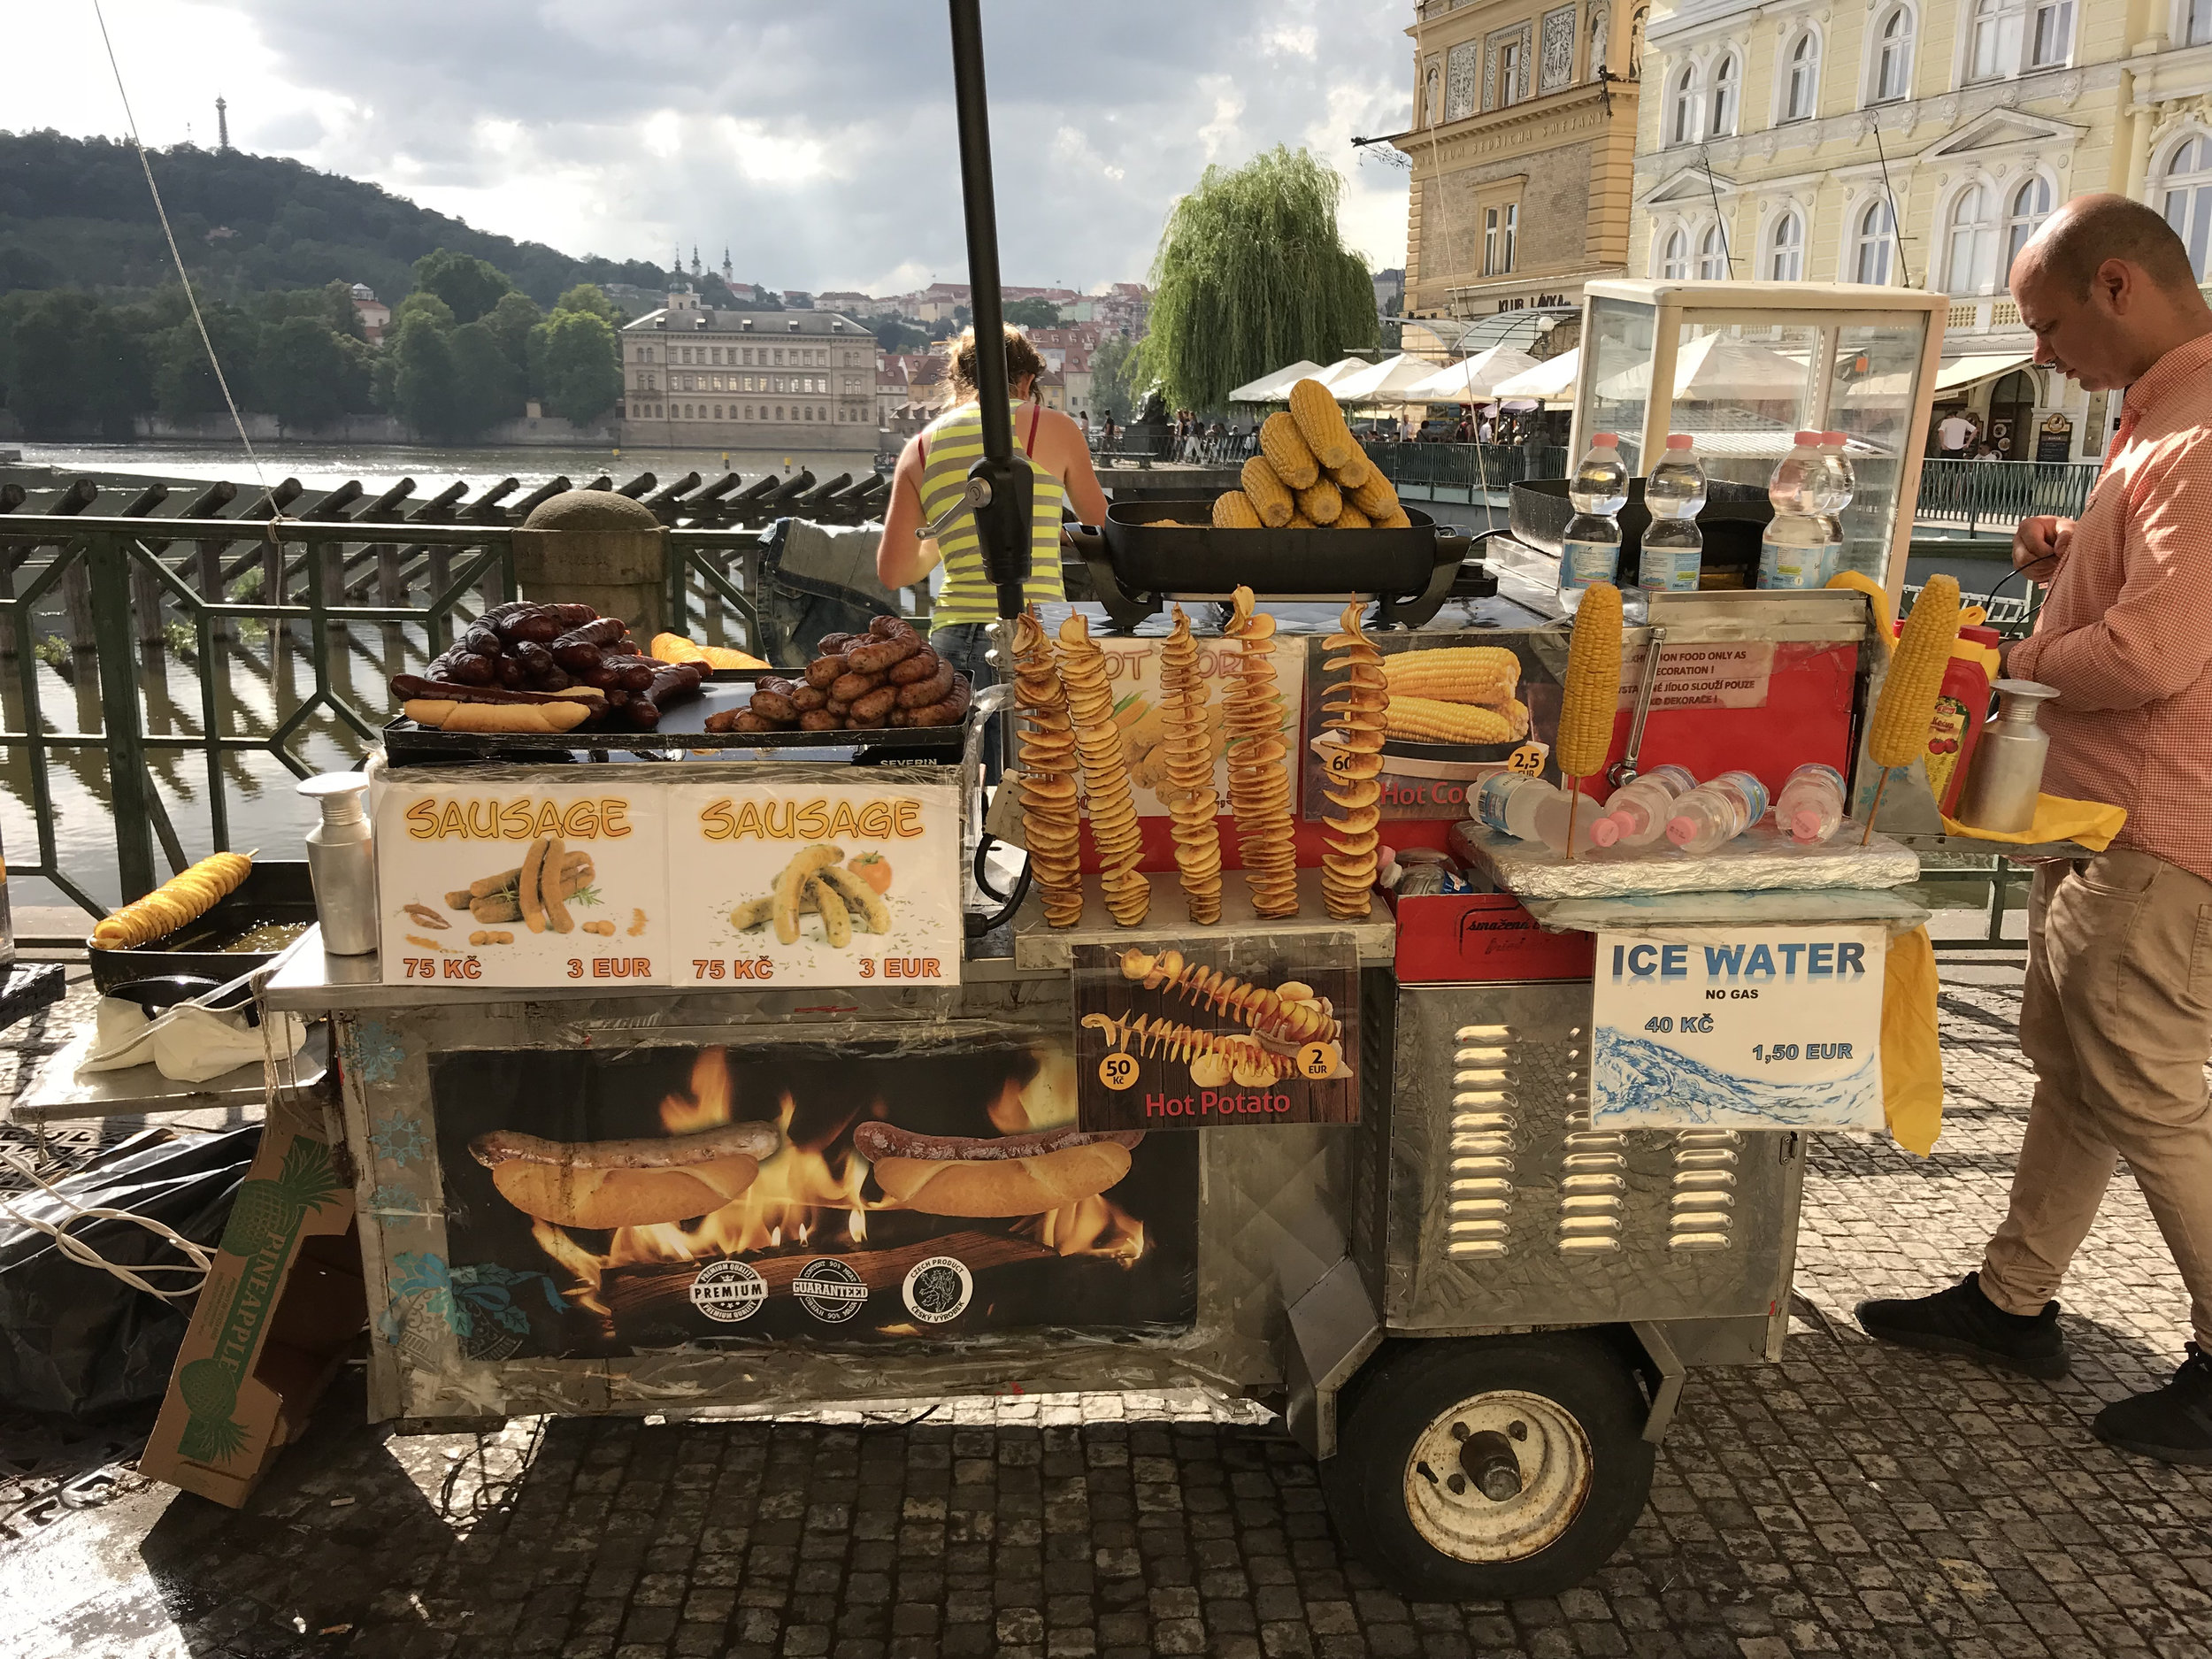 teri_Prague_WalkingOldCityRiverfront_spiritedtable_photo03.jpg